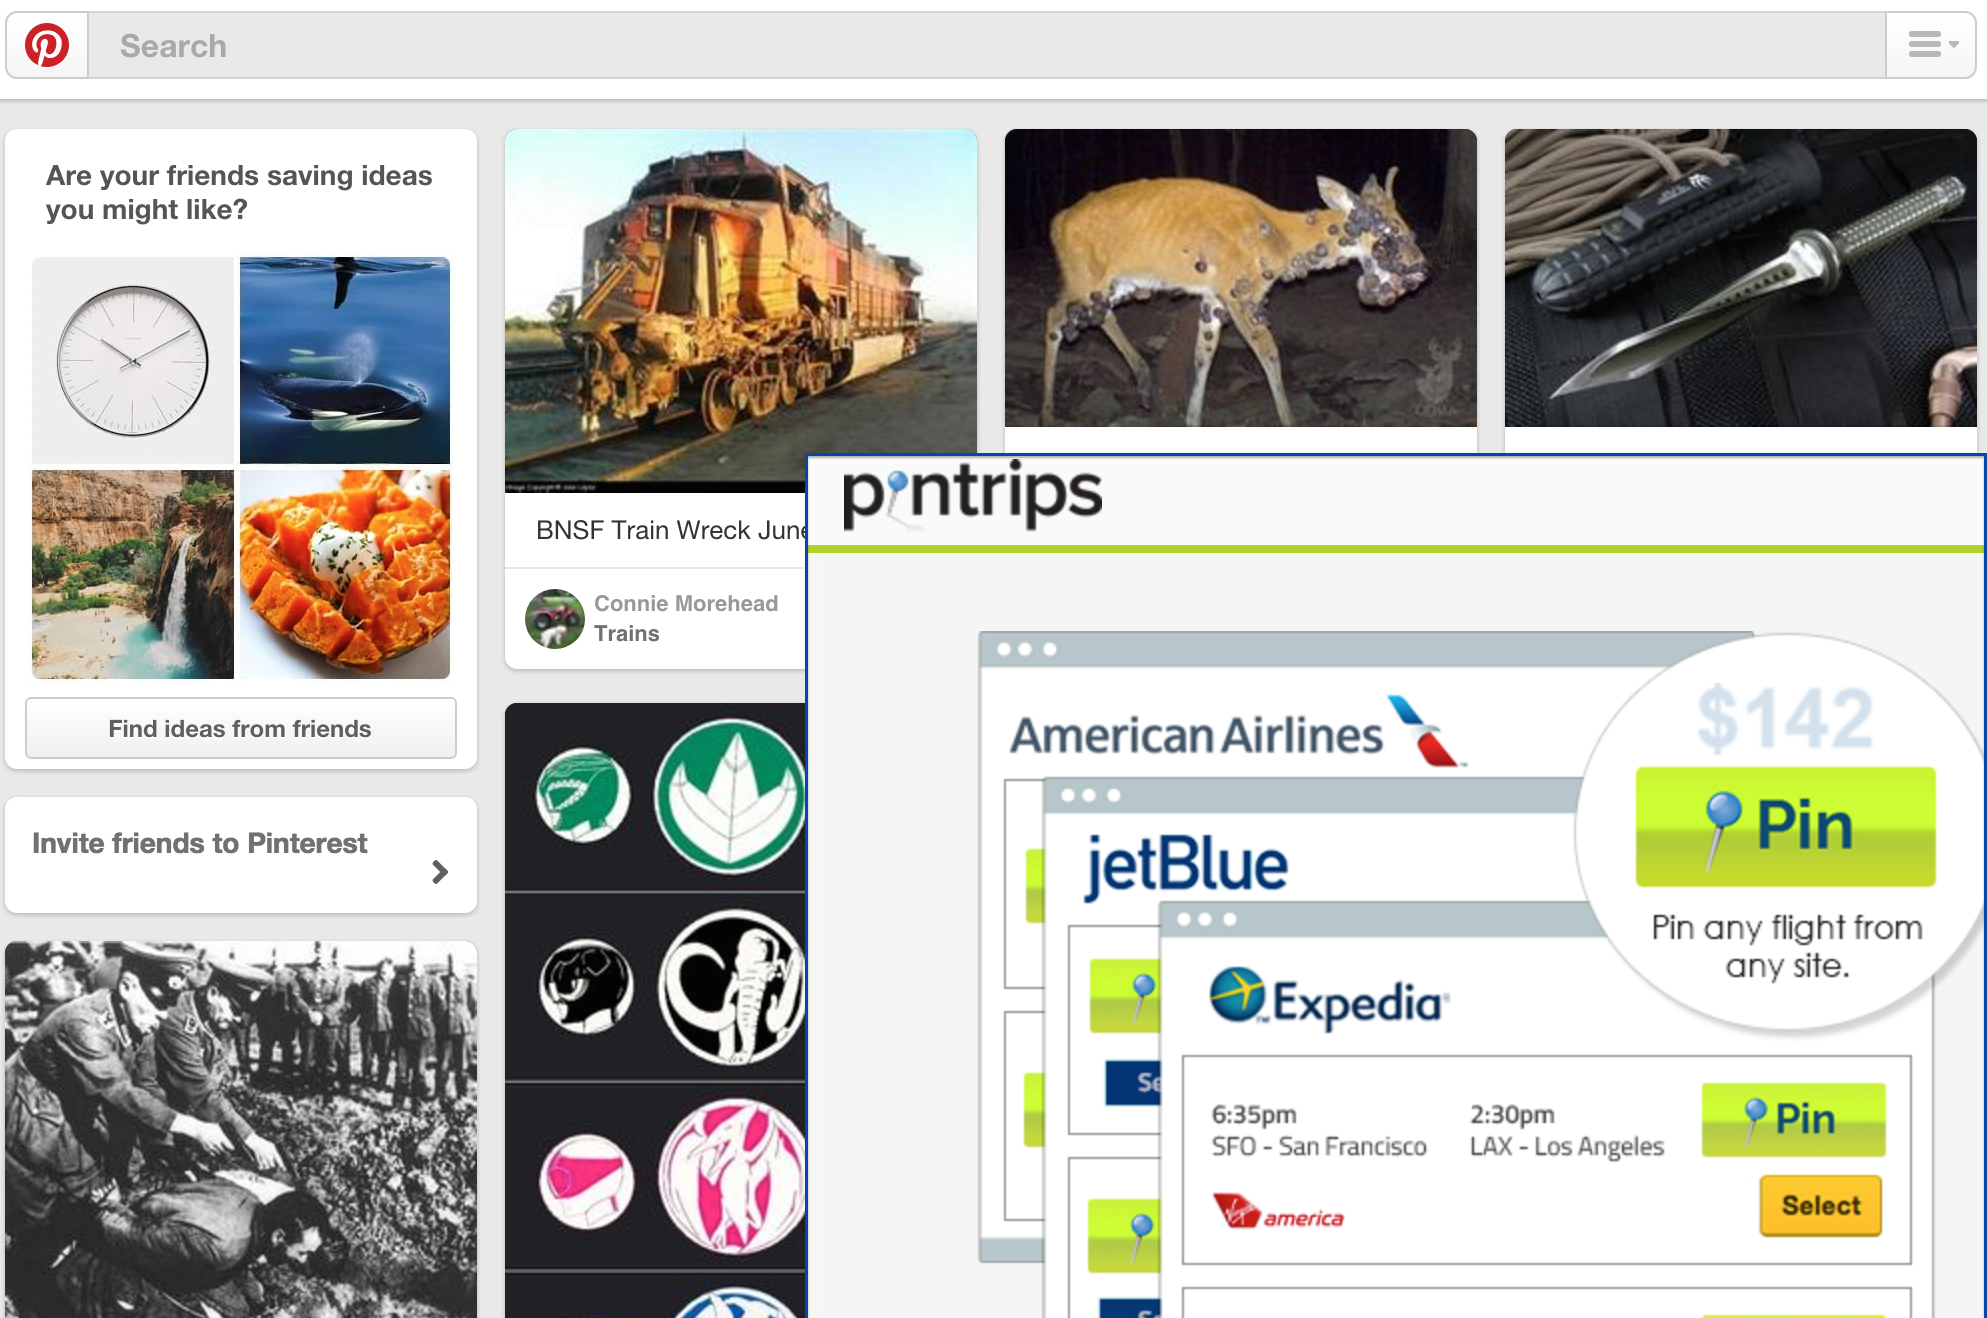 Pinterest sued Pintrips in 2013, alleging that the travel-booking site was infringing on its trademark.